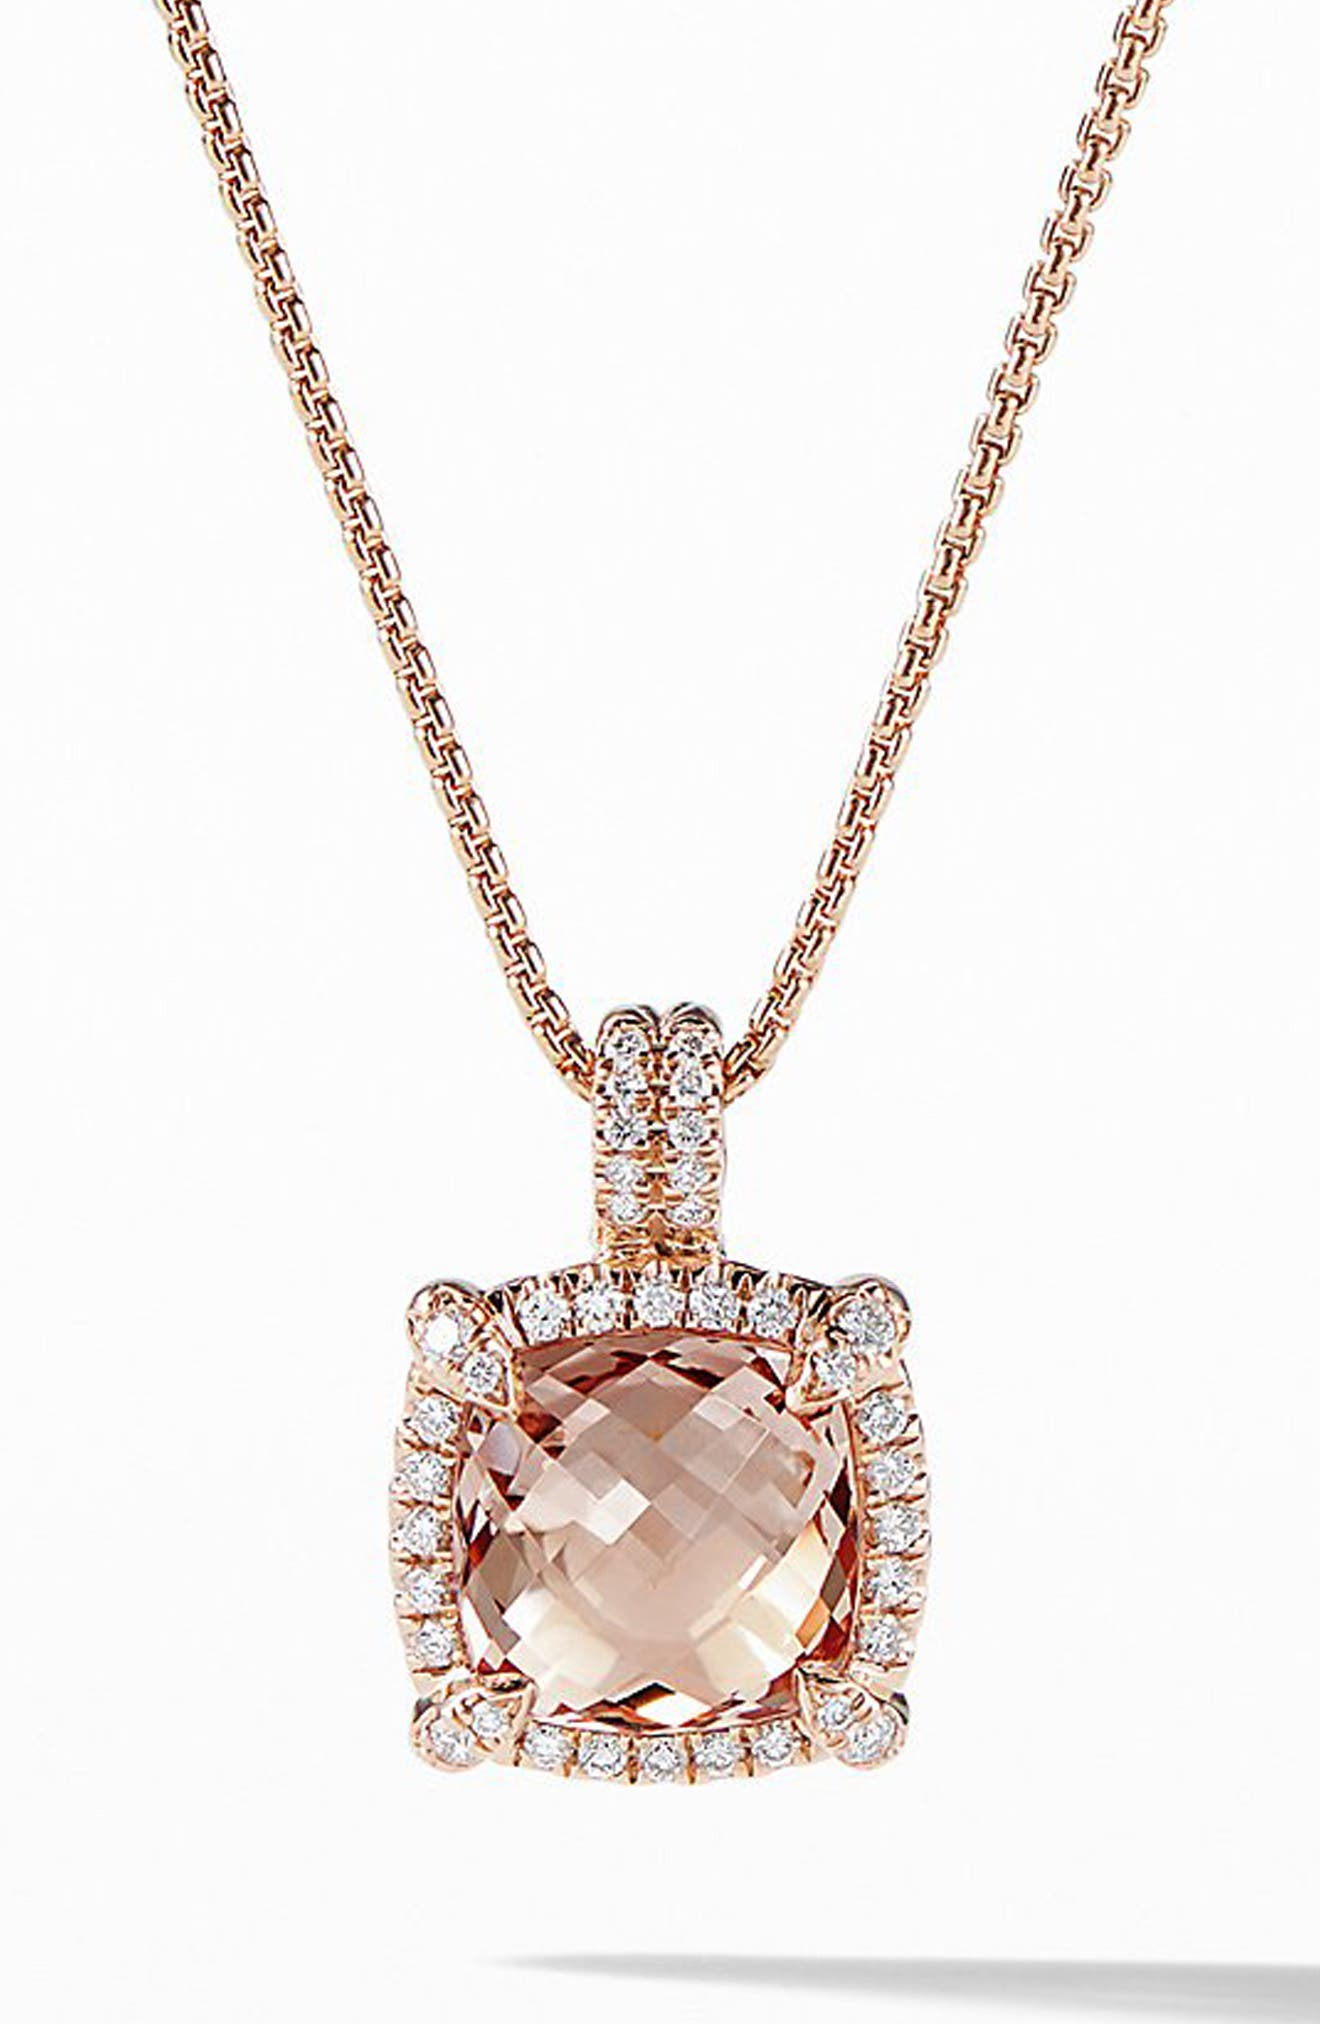 Châtelaine Pavé Bezel Pendant Necklace with Morganite and Diamonds in 18K Rose Gold,                         Main,                         color, ROSE GOLD/ DIAMOND/ MORGANITE